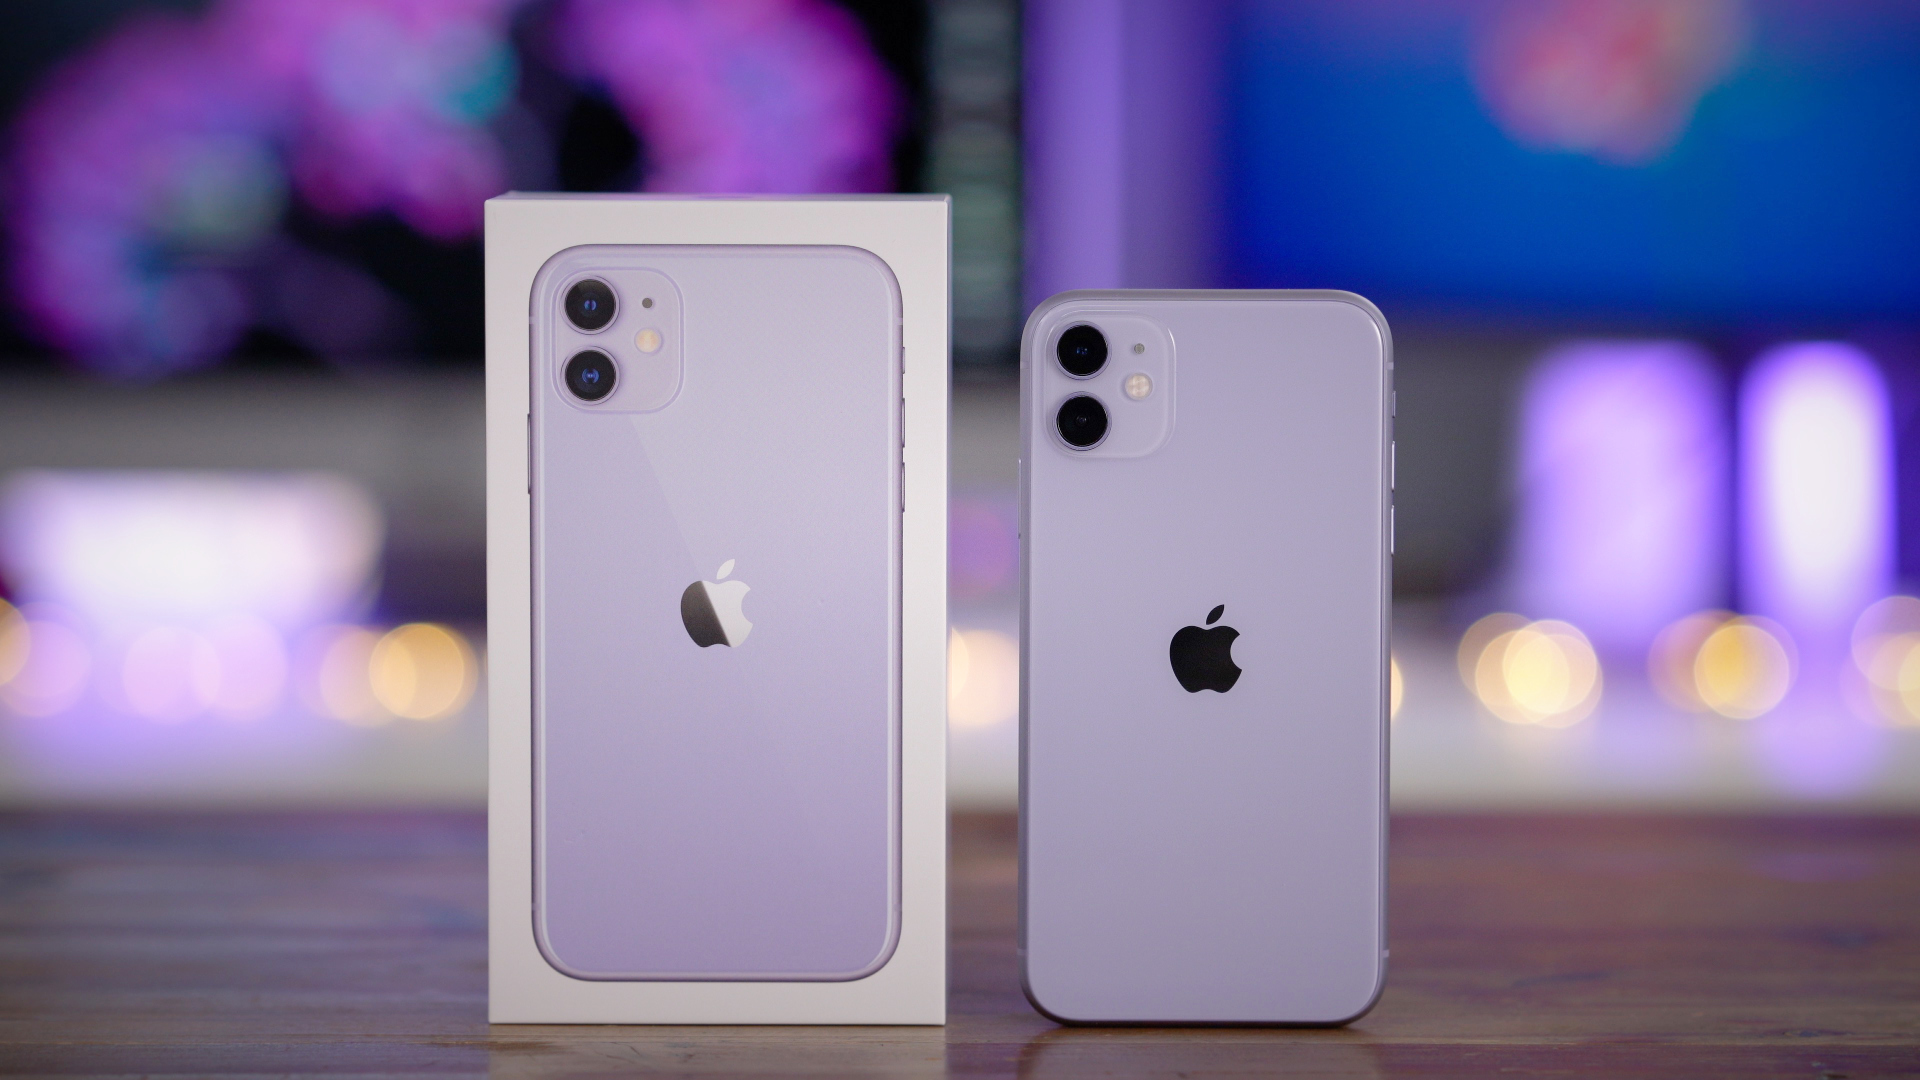 Top iPhone 11 features \u2013 an even better bang for the buck